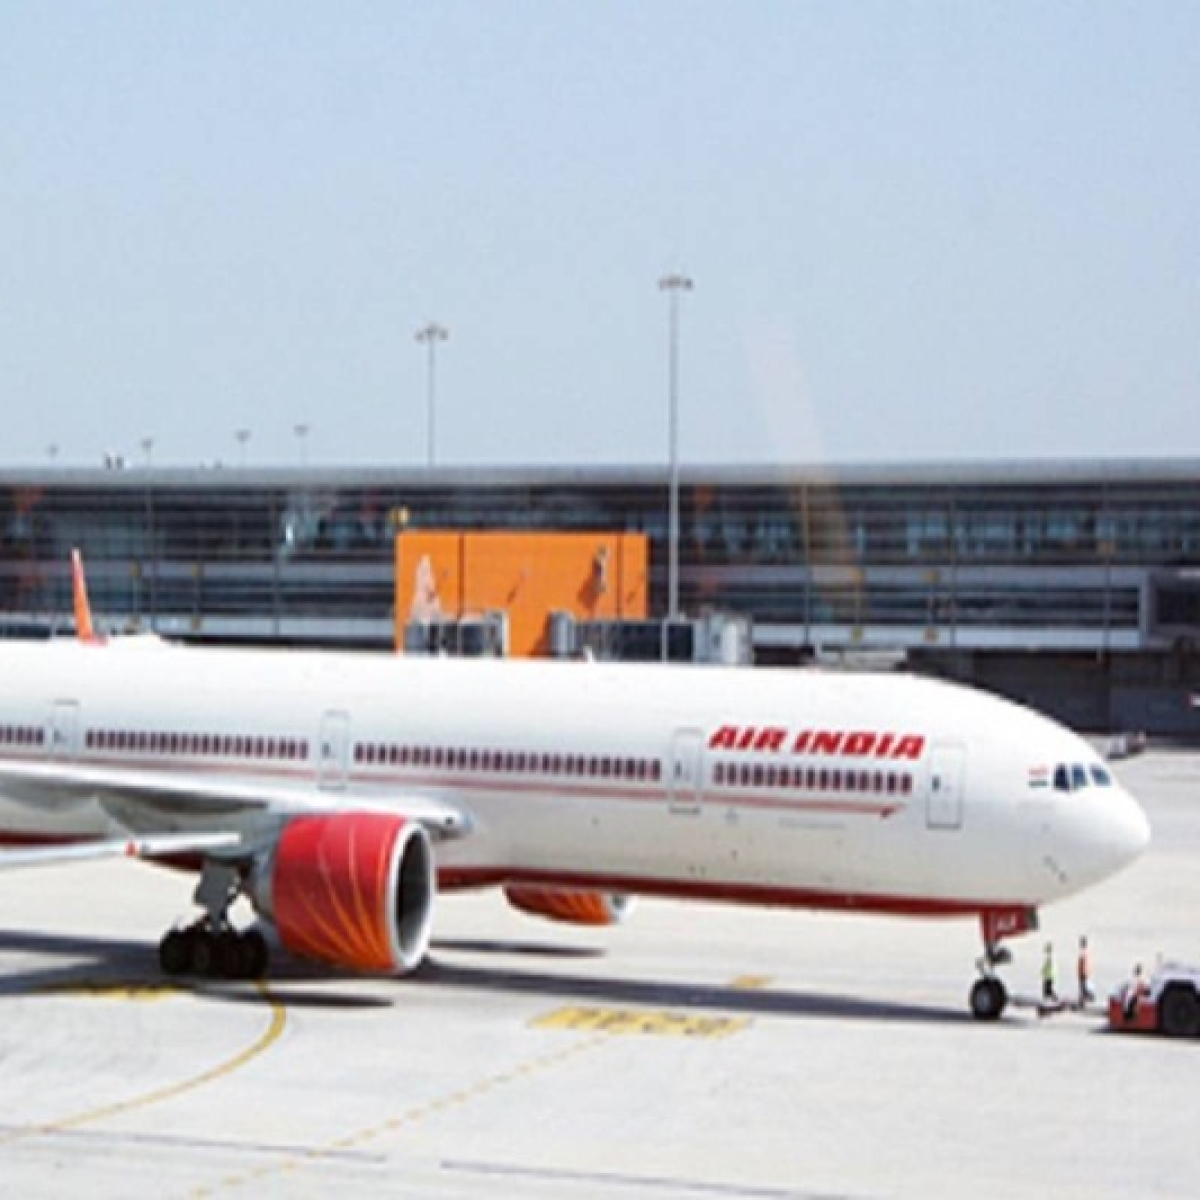 Air India privatisation unlikely to conclude this fiscal